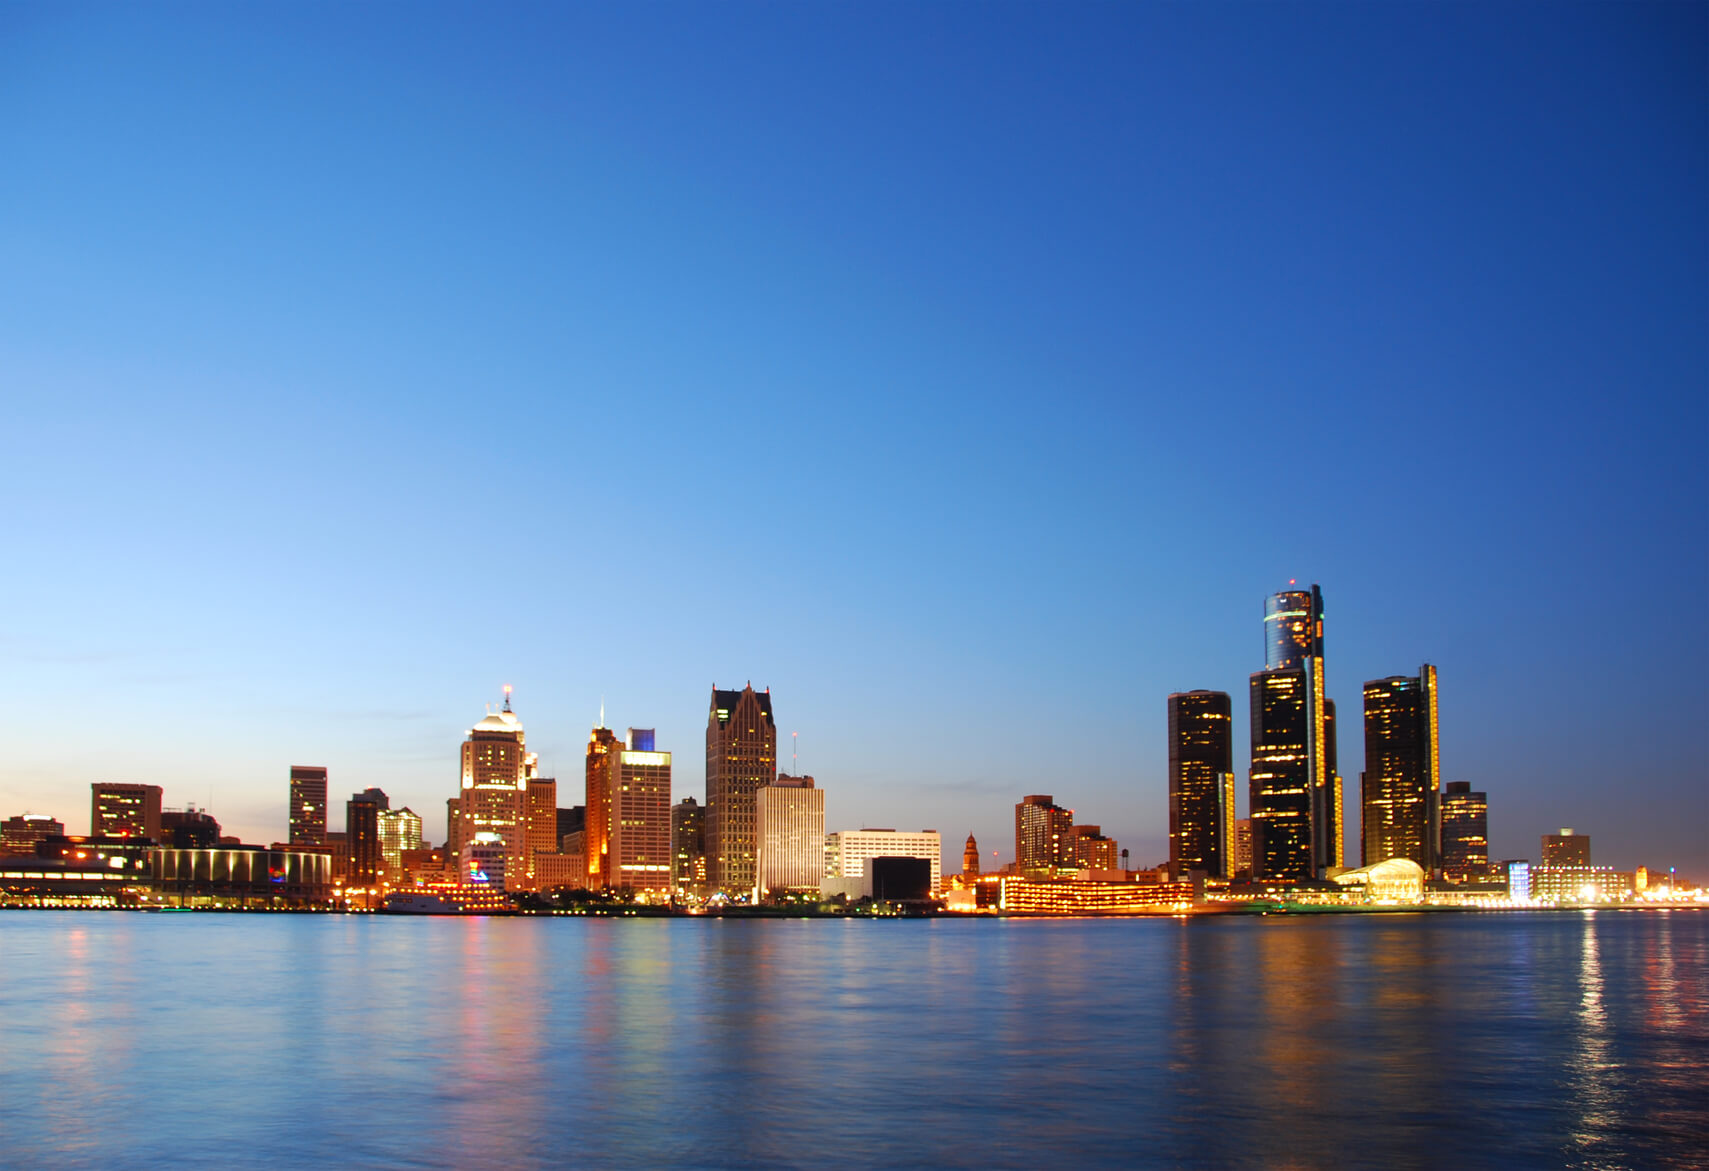 Non-stop from San Juan, Puerto Rico to Detroit, USA for only $270 USD roundtrip